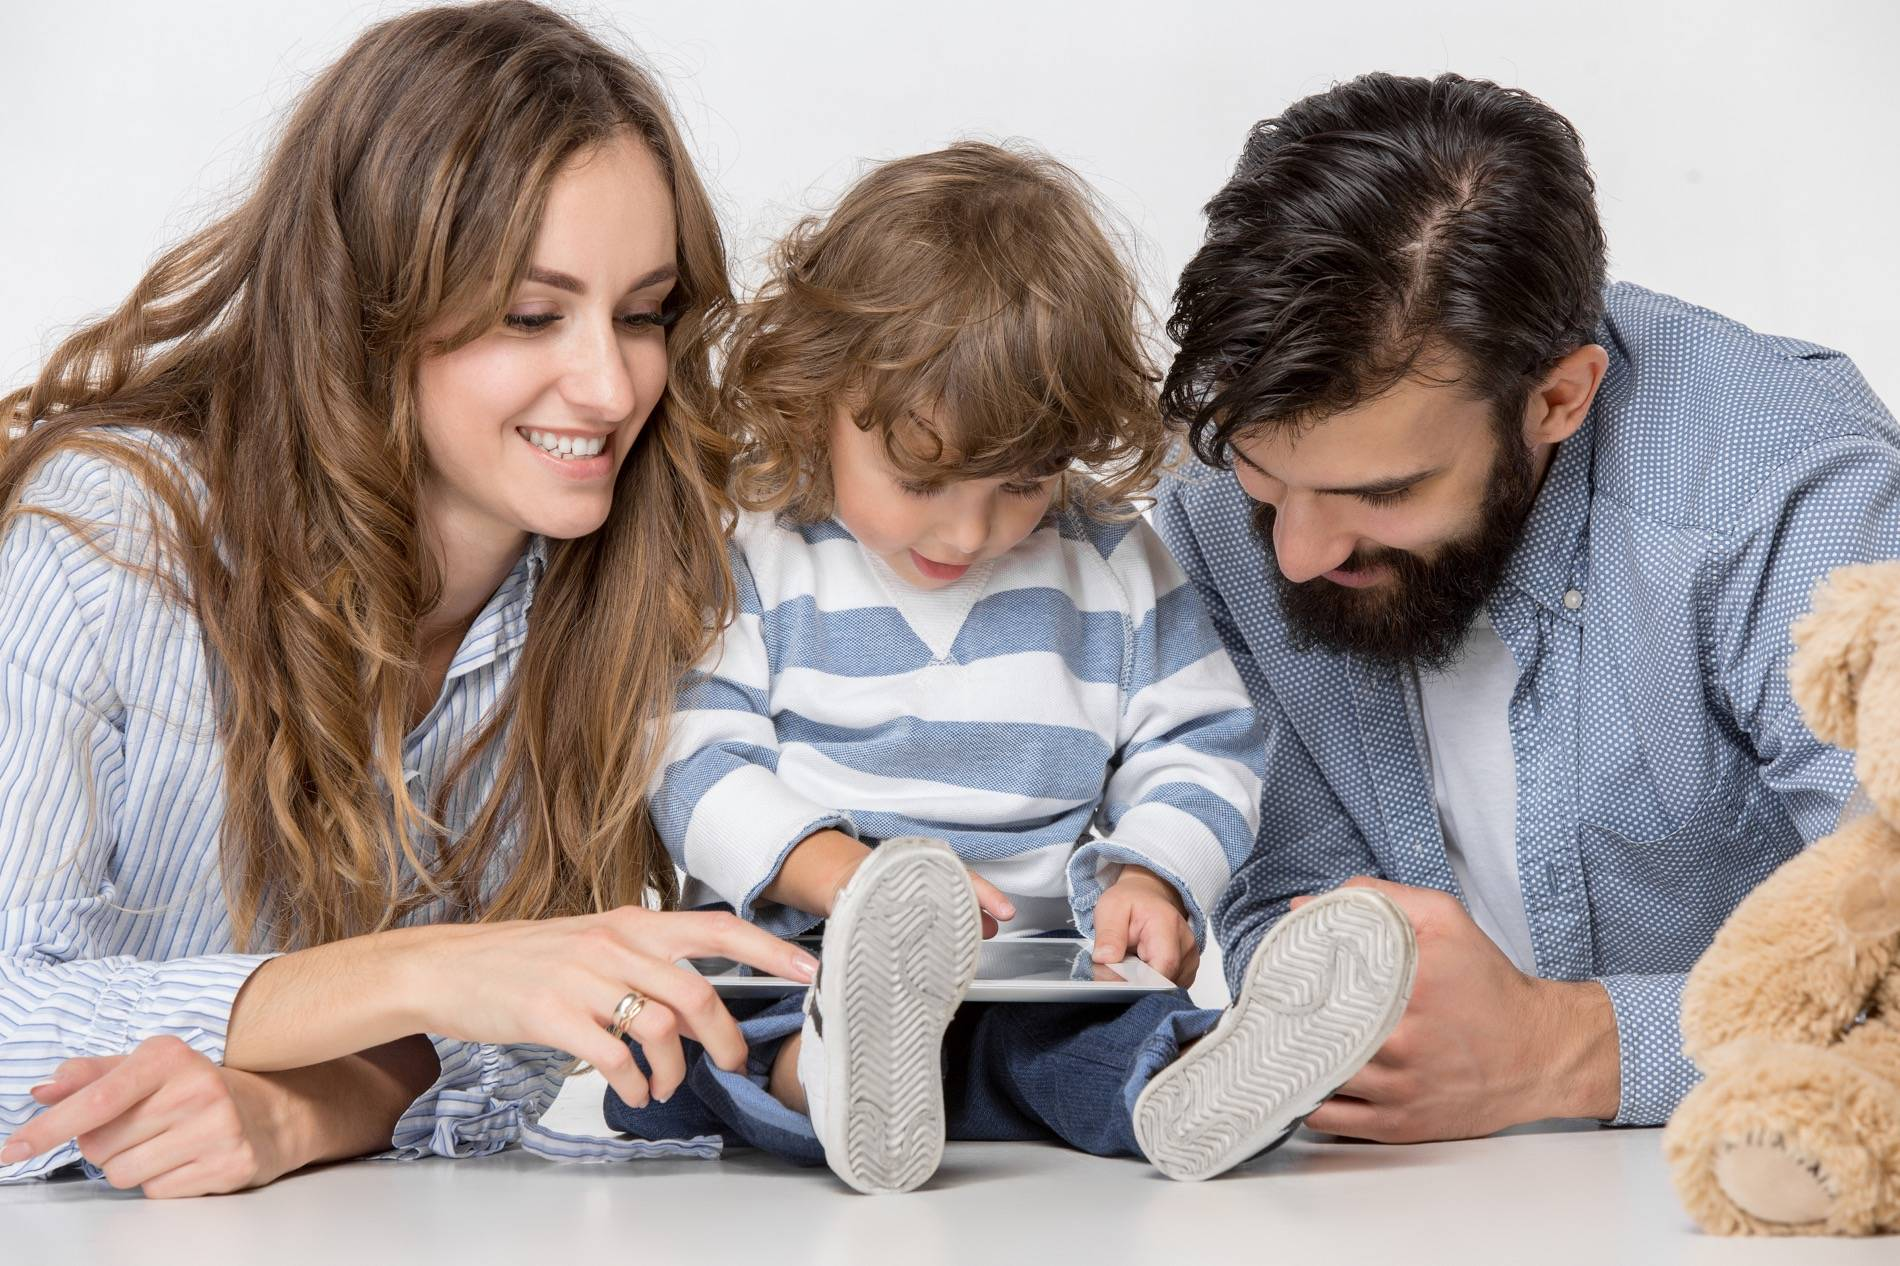 Mother, father, and child looking at an iPad